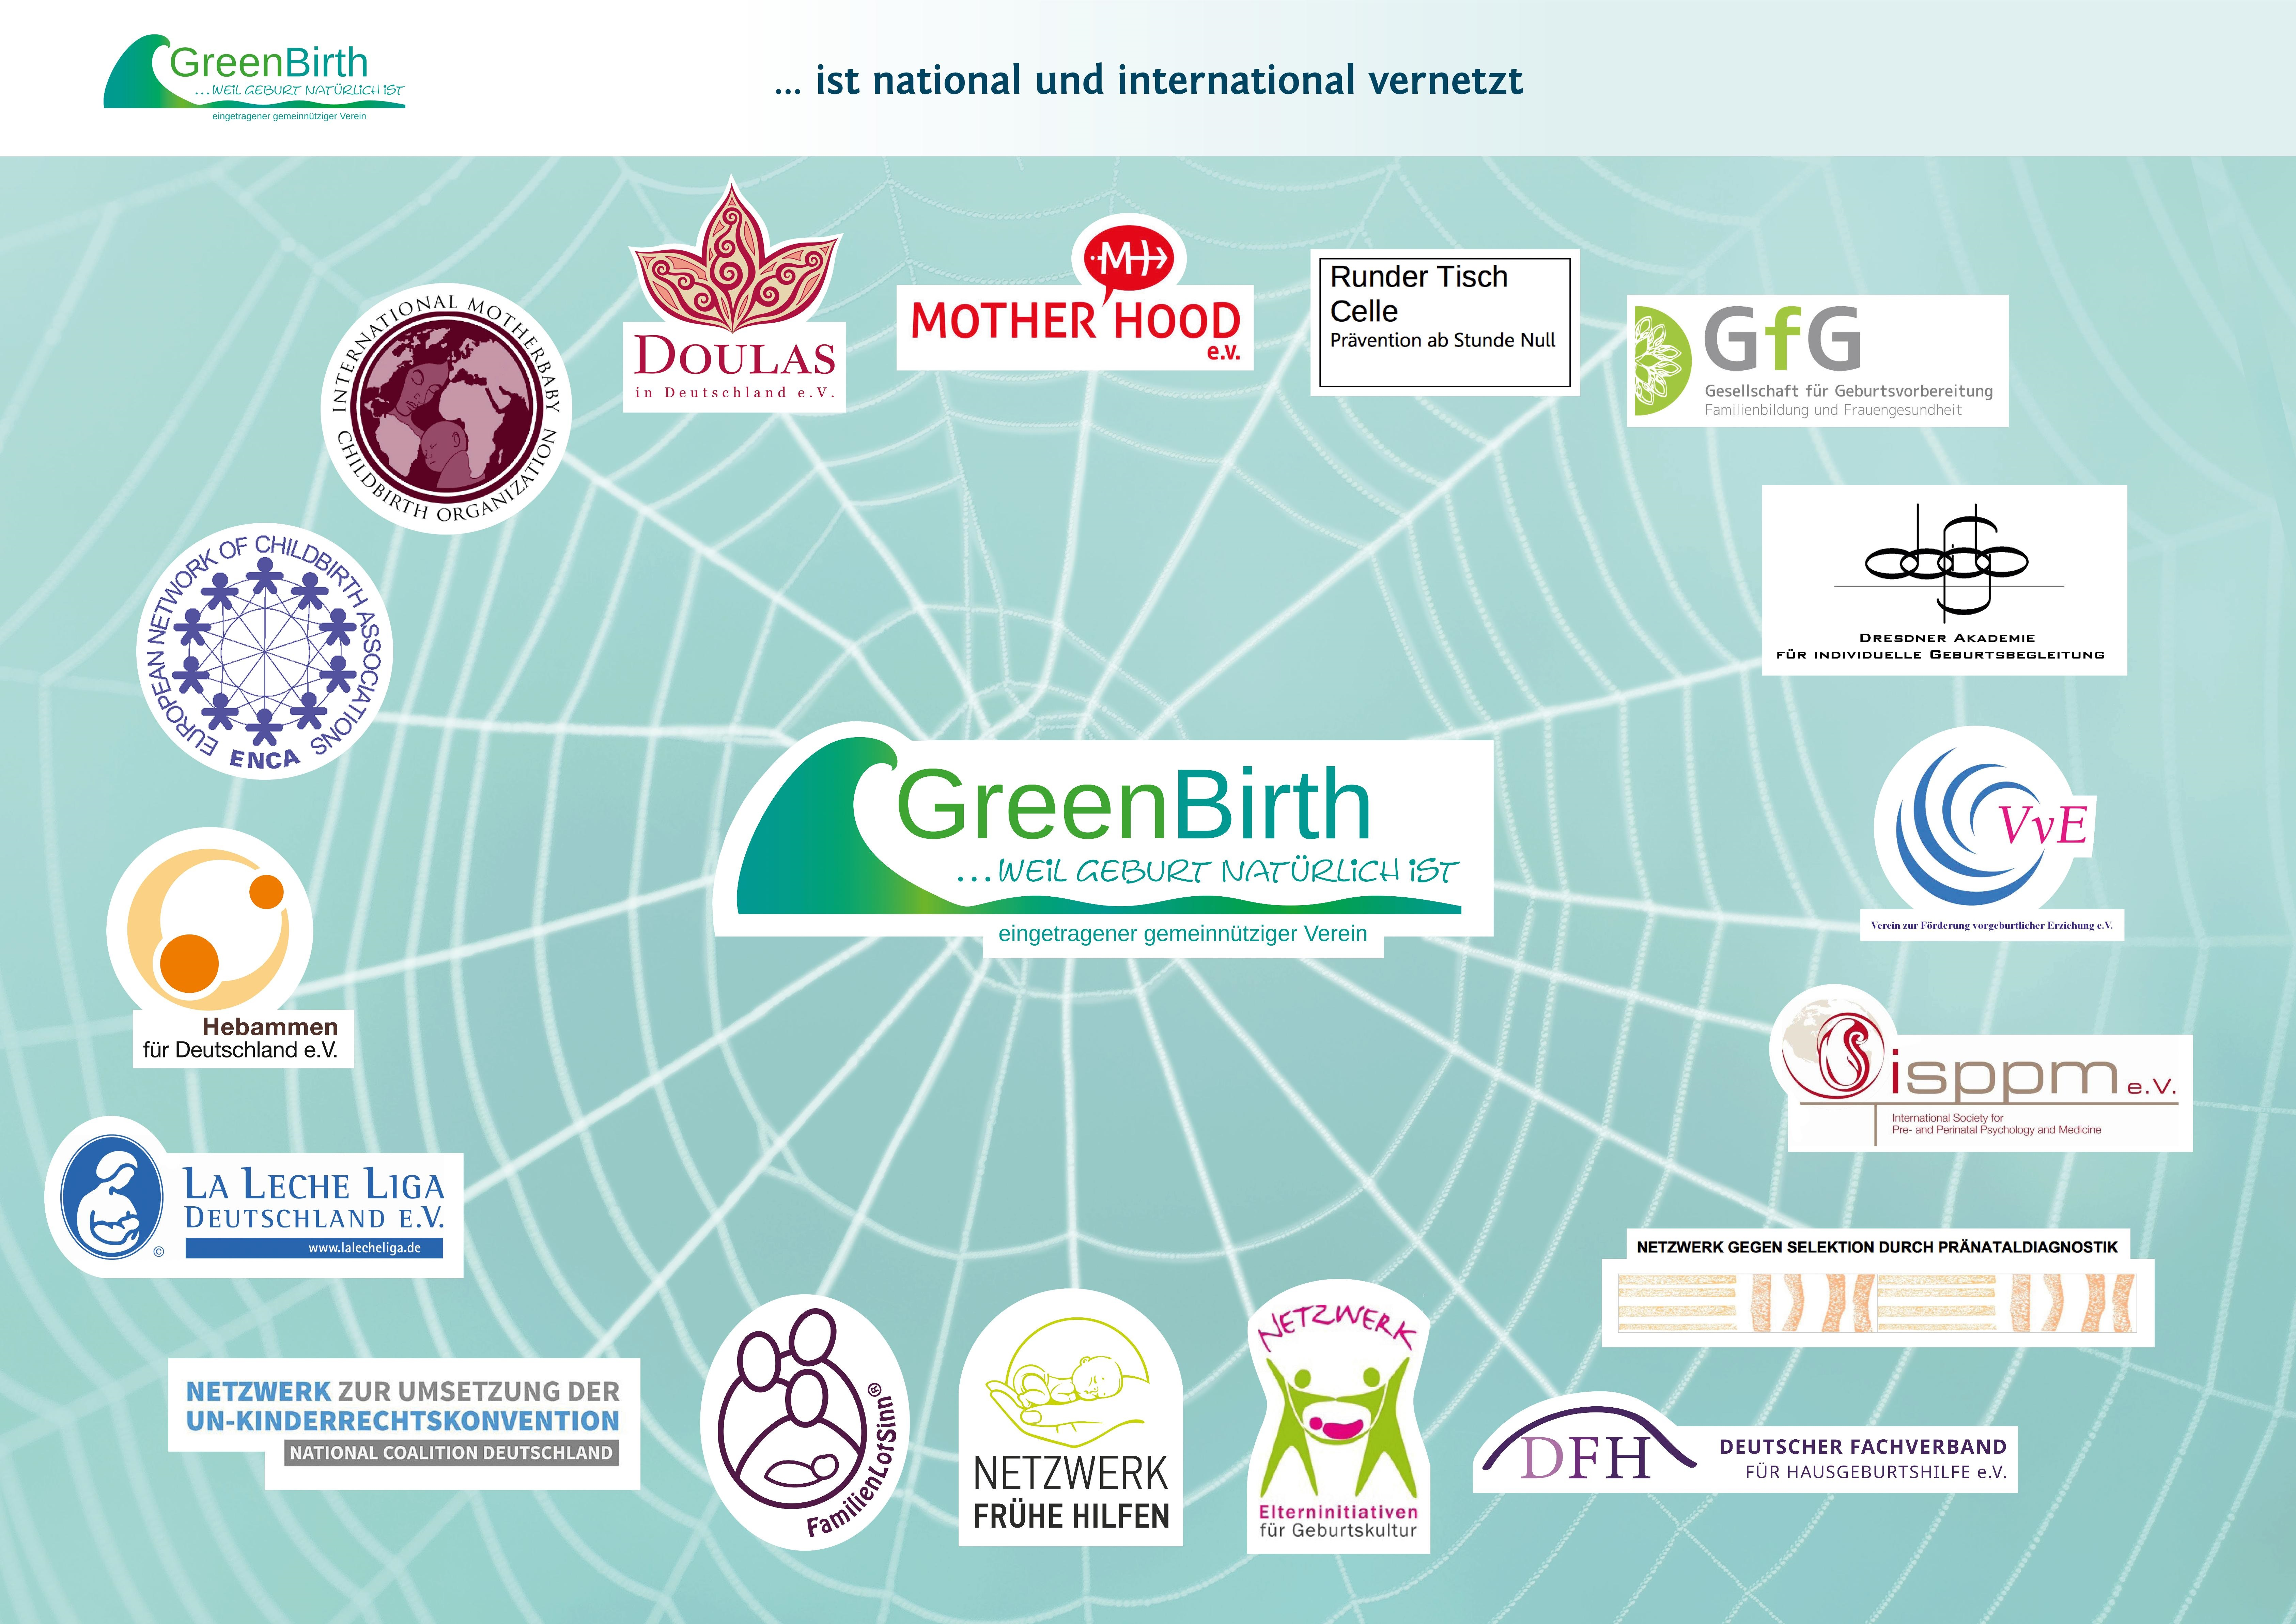 Greenbirth vernetzt